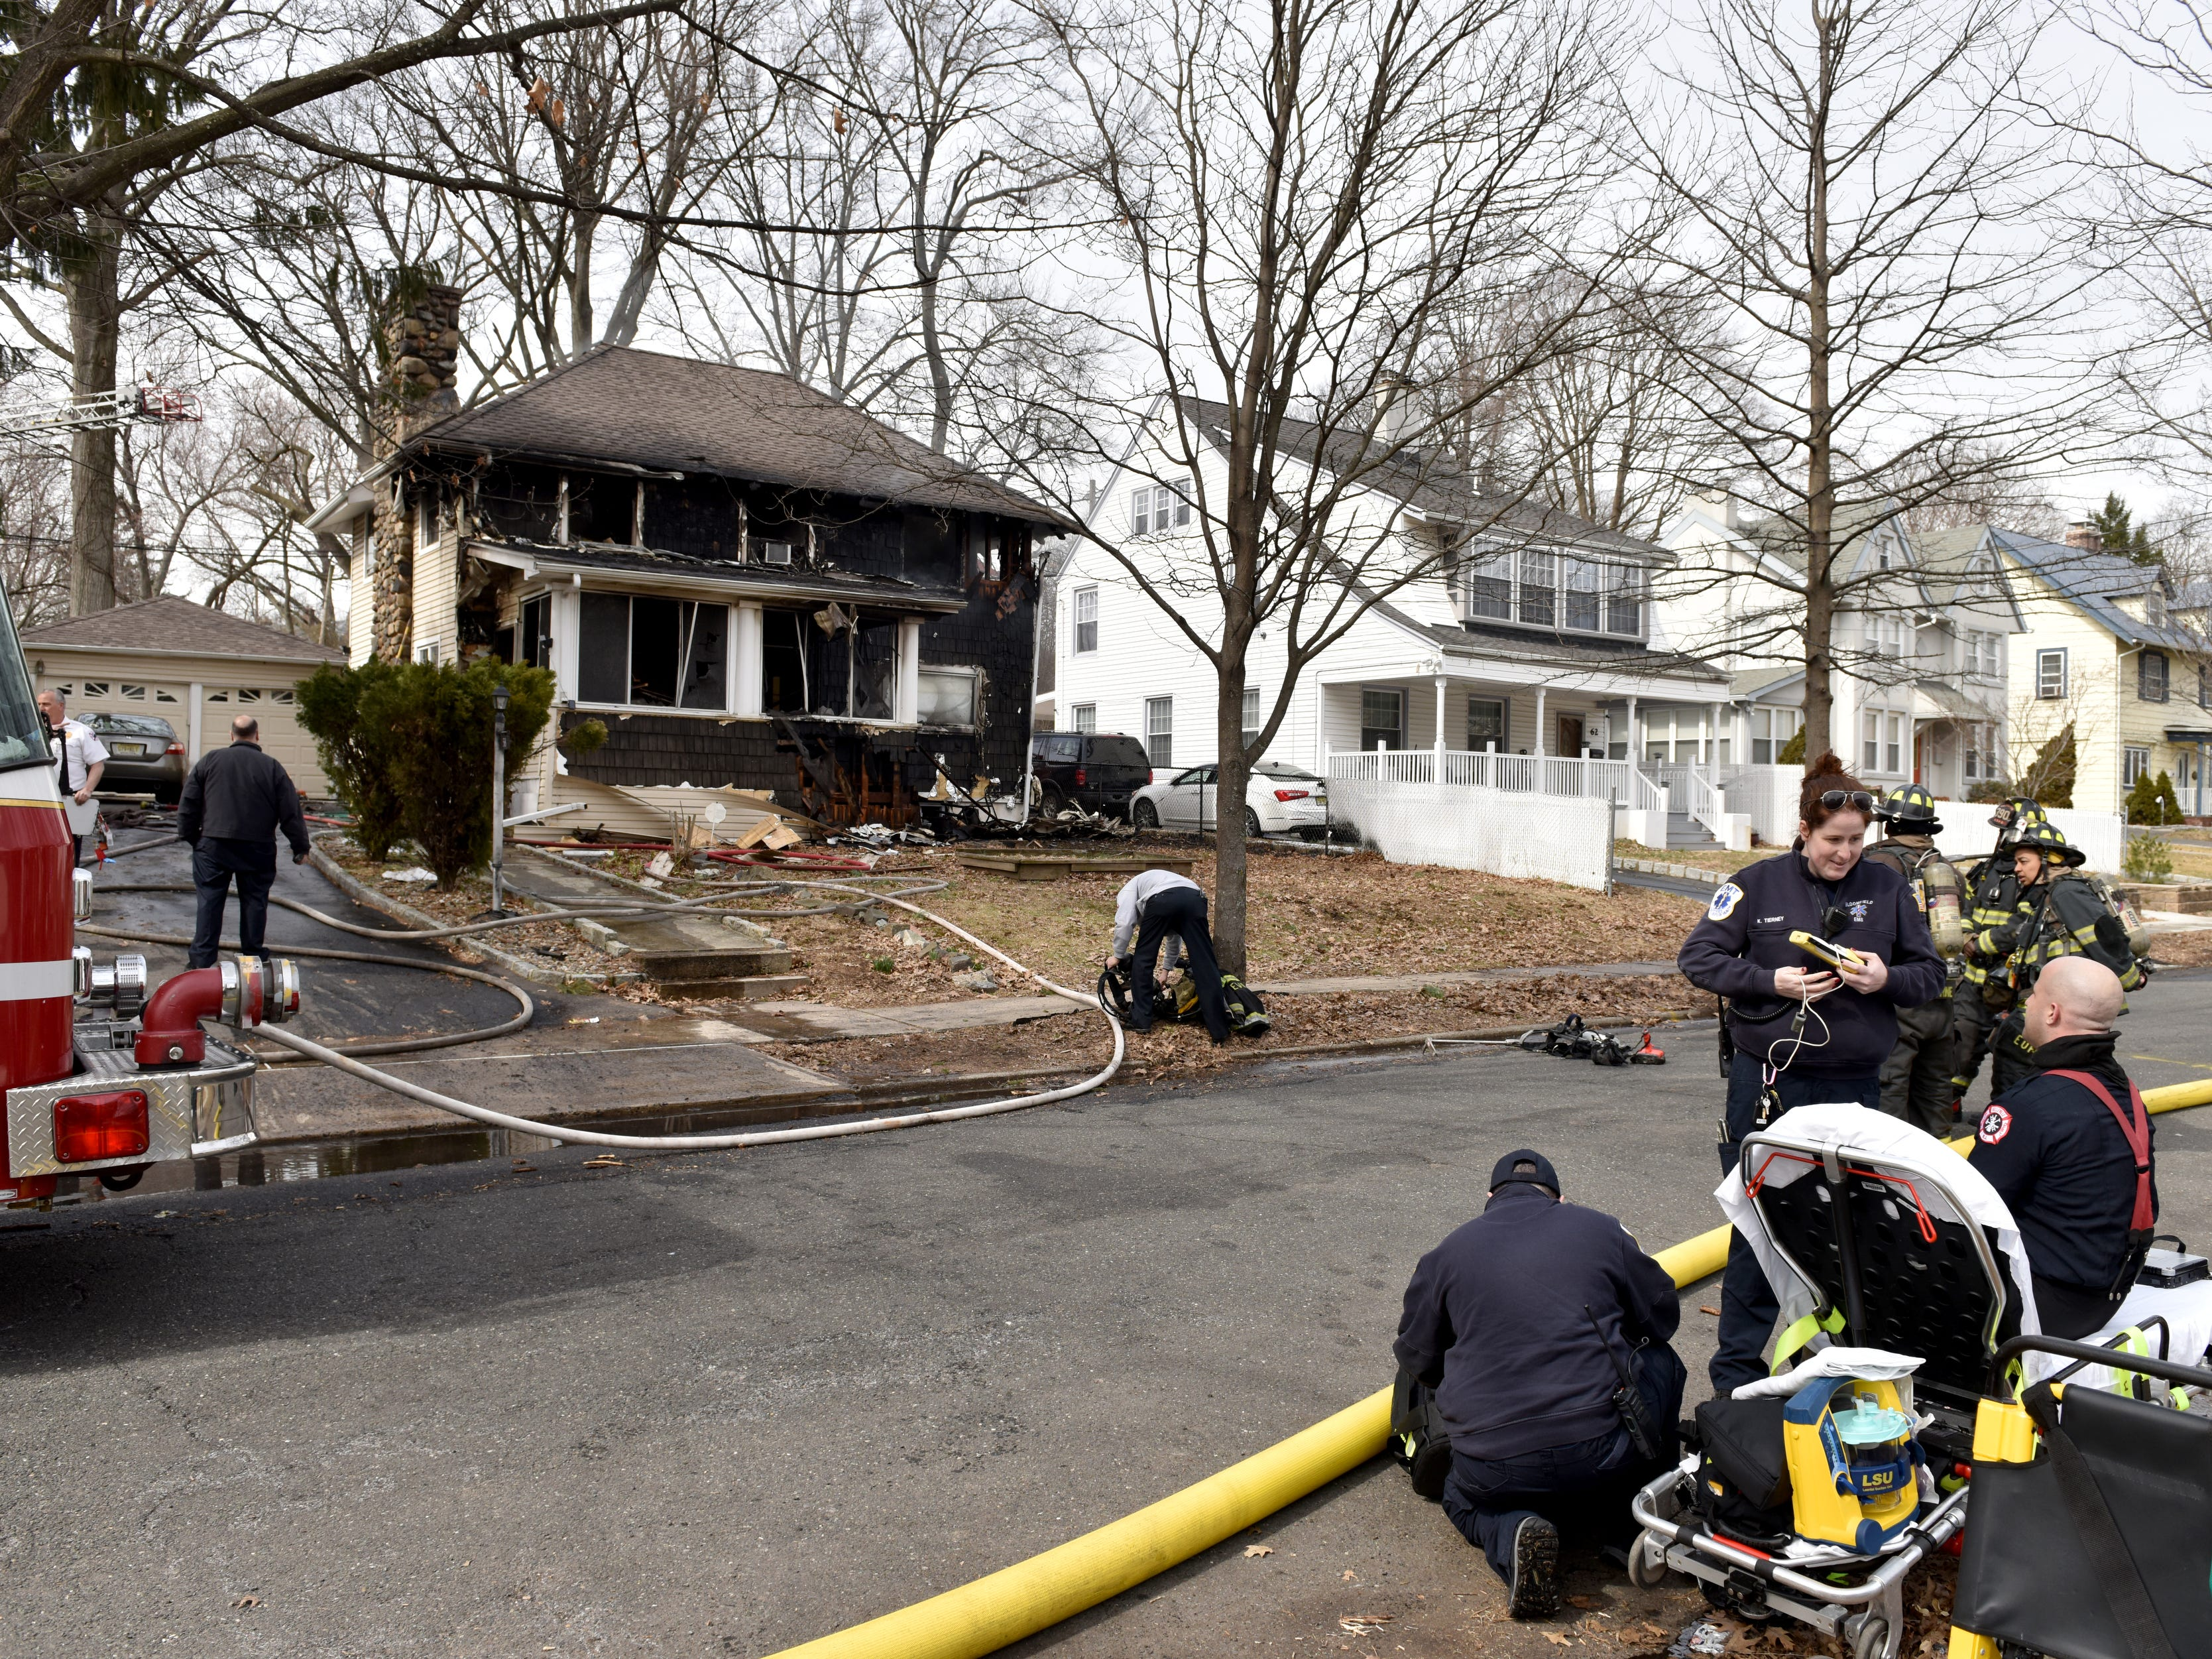 Bloomfield firefighter with assistance with mutual aid companies battle a fire on Willard Ave in Bloomfield on Wednesday March 13, 2019.